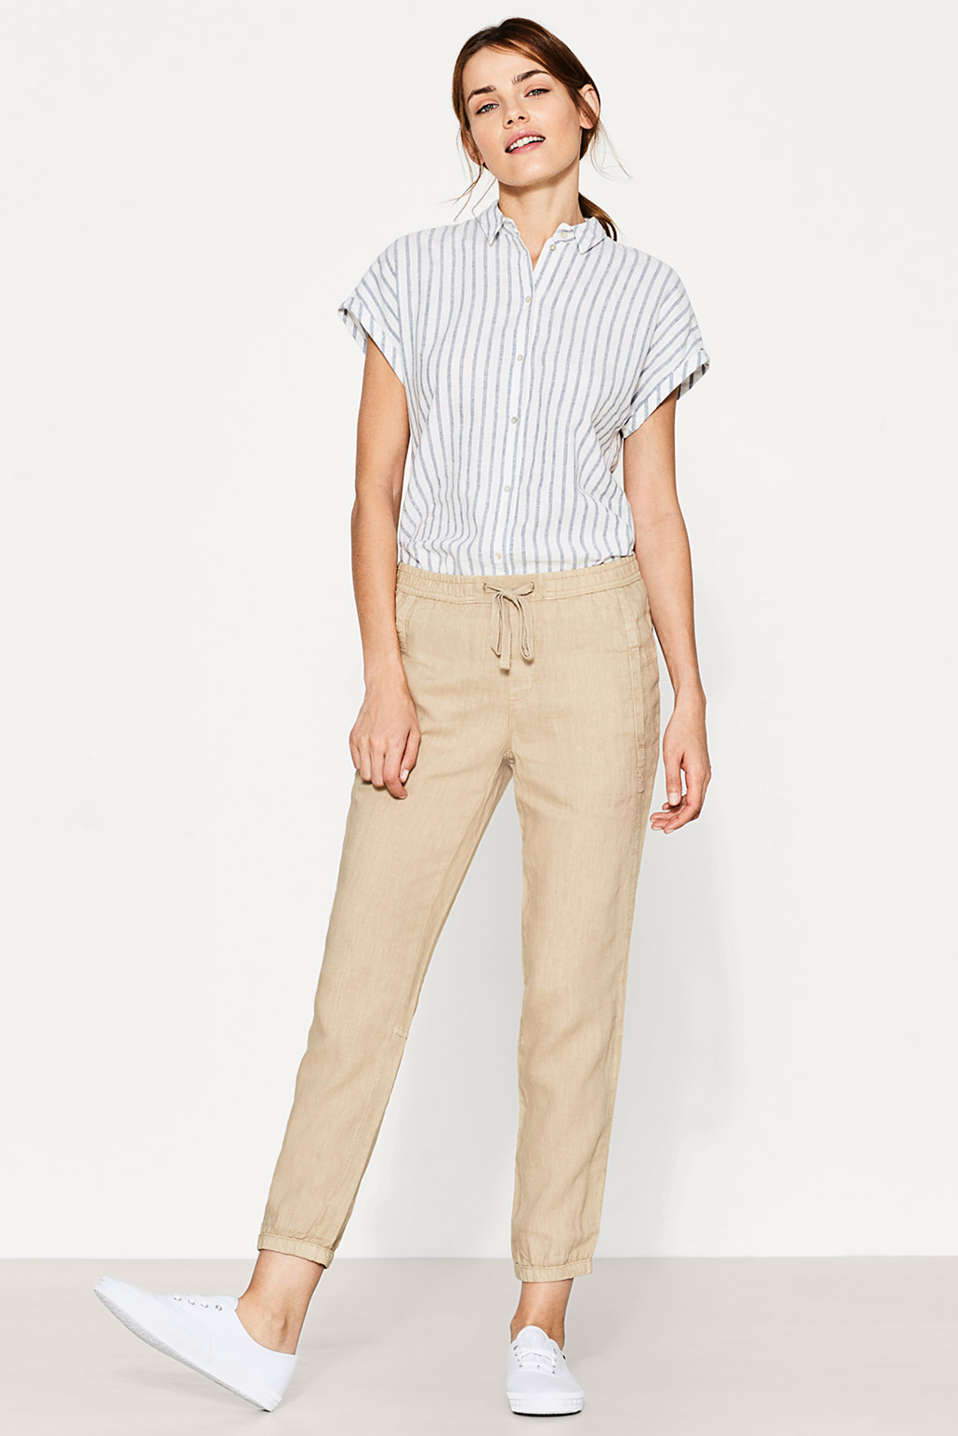 Esprit - Casual cuffed trousers in 100% linen